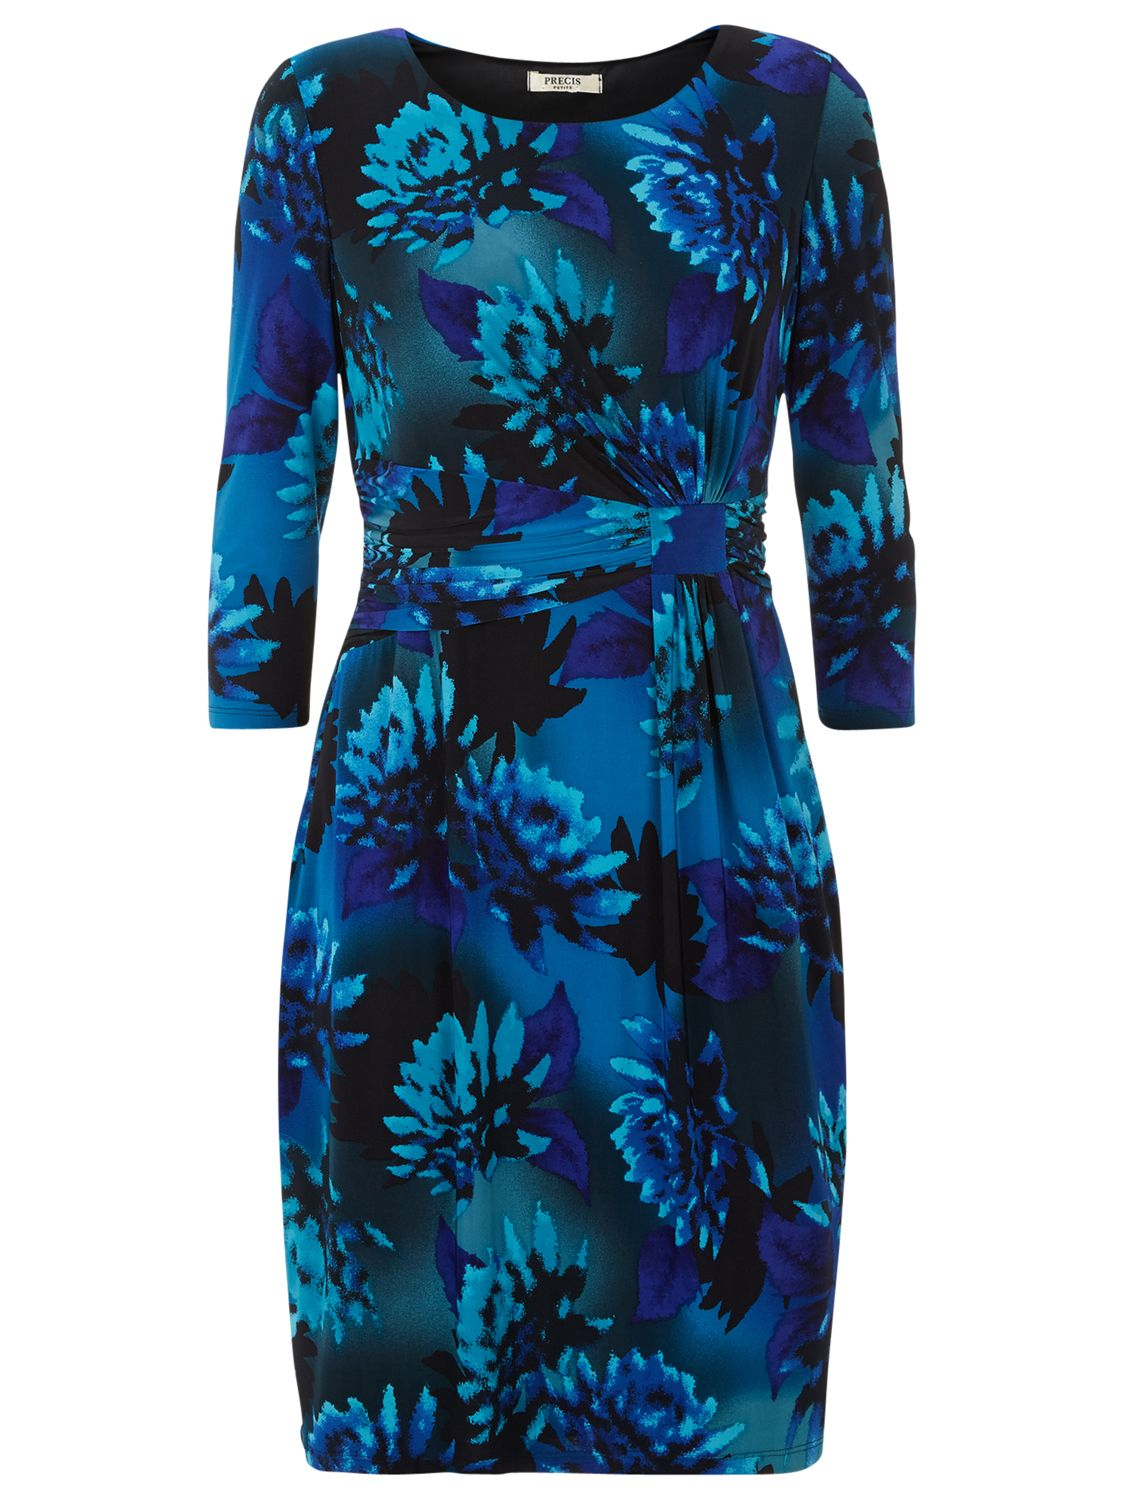 precis petite floral print dress blue, precis, petite, floral, print, dress, blue, precis petite, 14|18, clearance, womenswear offers, womens dresses offers, women, womens dresses, special offers, 1609715